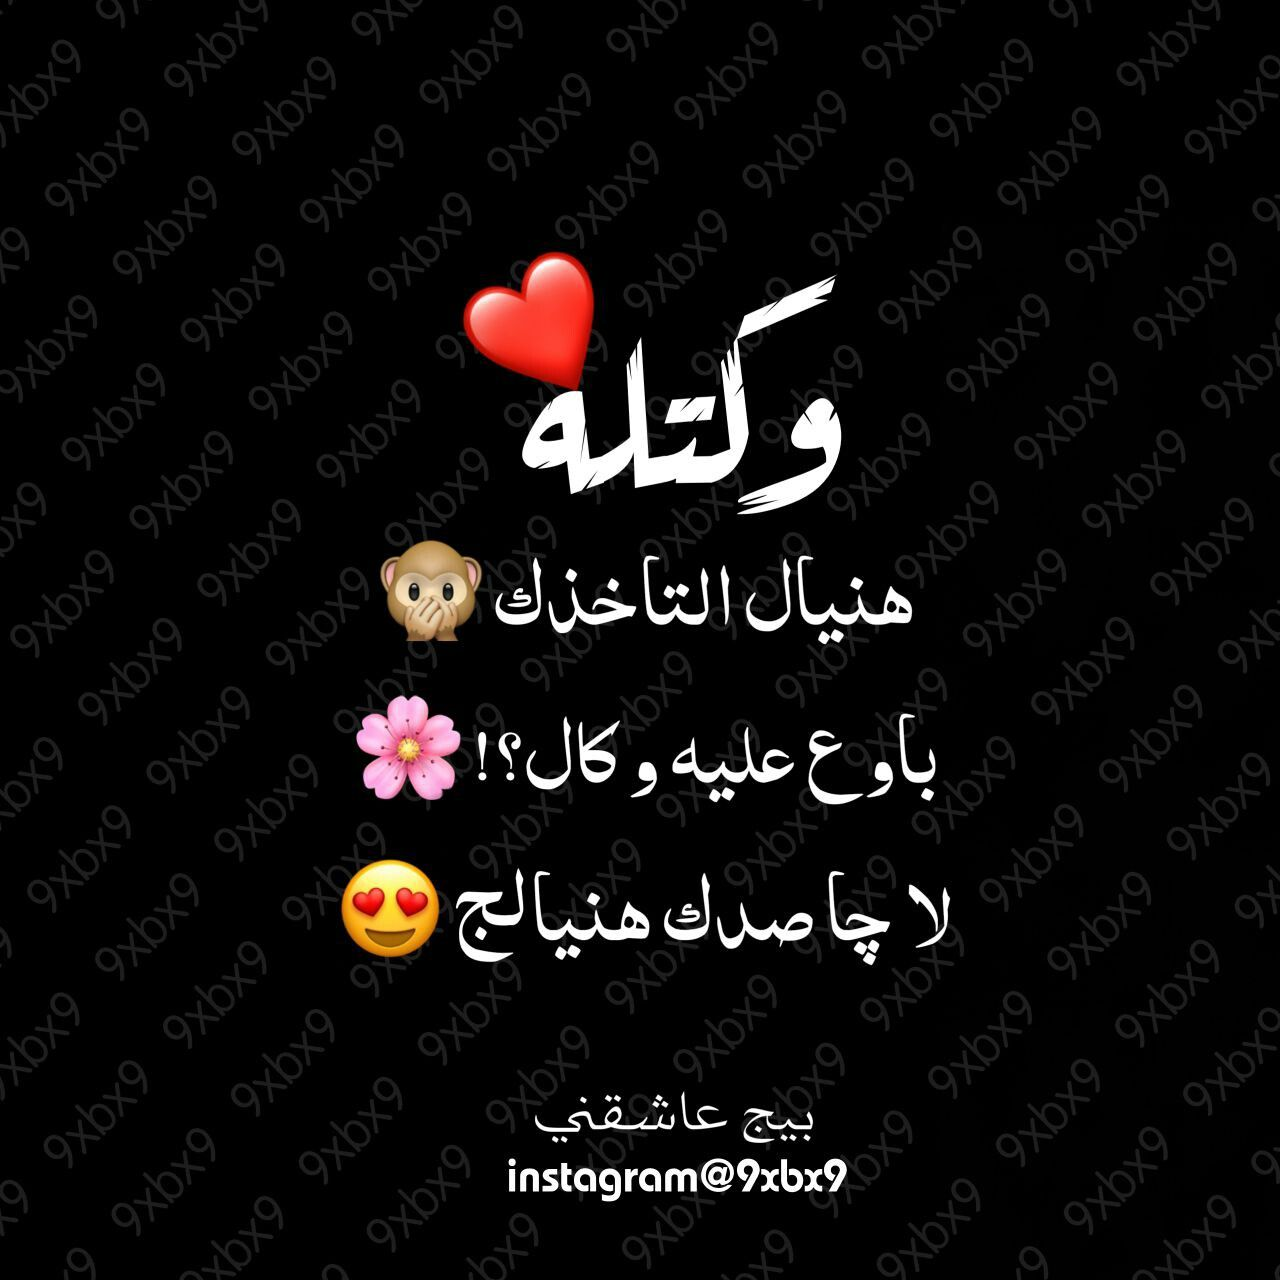 غزل عراقي حب شعر Cover Photo Quotes Cute Baby Boy Outfits Arabic Love Quotes